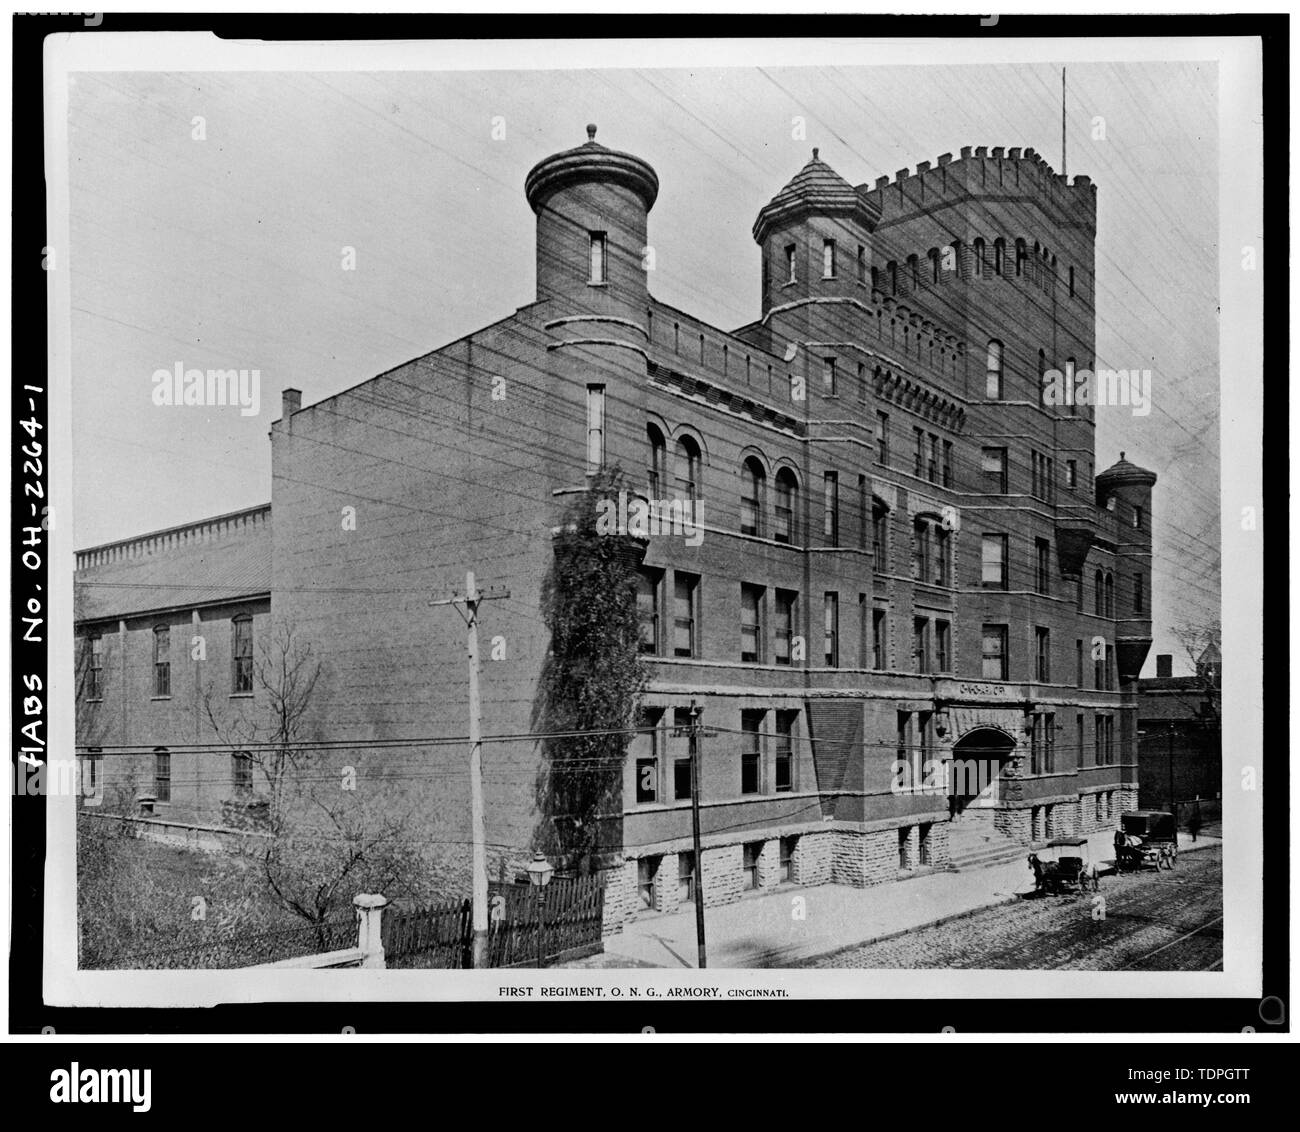 from 'Selections from Executed Work and Sketches,' Hannaford and Sons, Architects, circa 1893 VIEW NORTHWEST, SOUTH AND EAST (FRONT) ELEVATIONS - Ohio National Guard Armory, 1417-1437 Western Avenue, Cincinnati, Hamilton County, OH Stock Photo